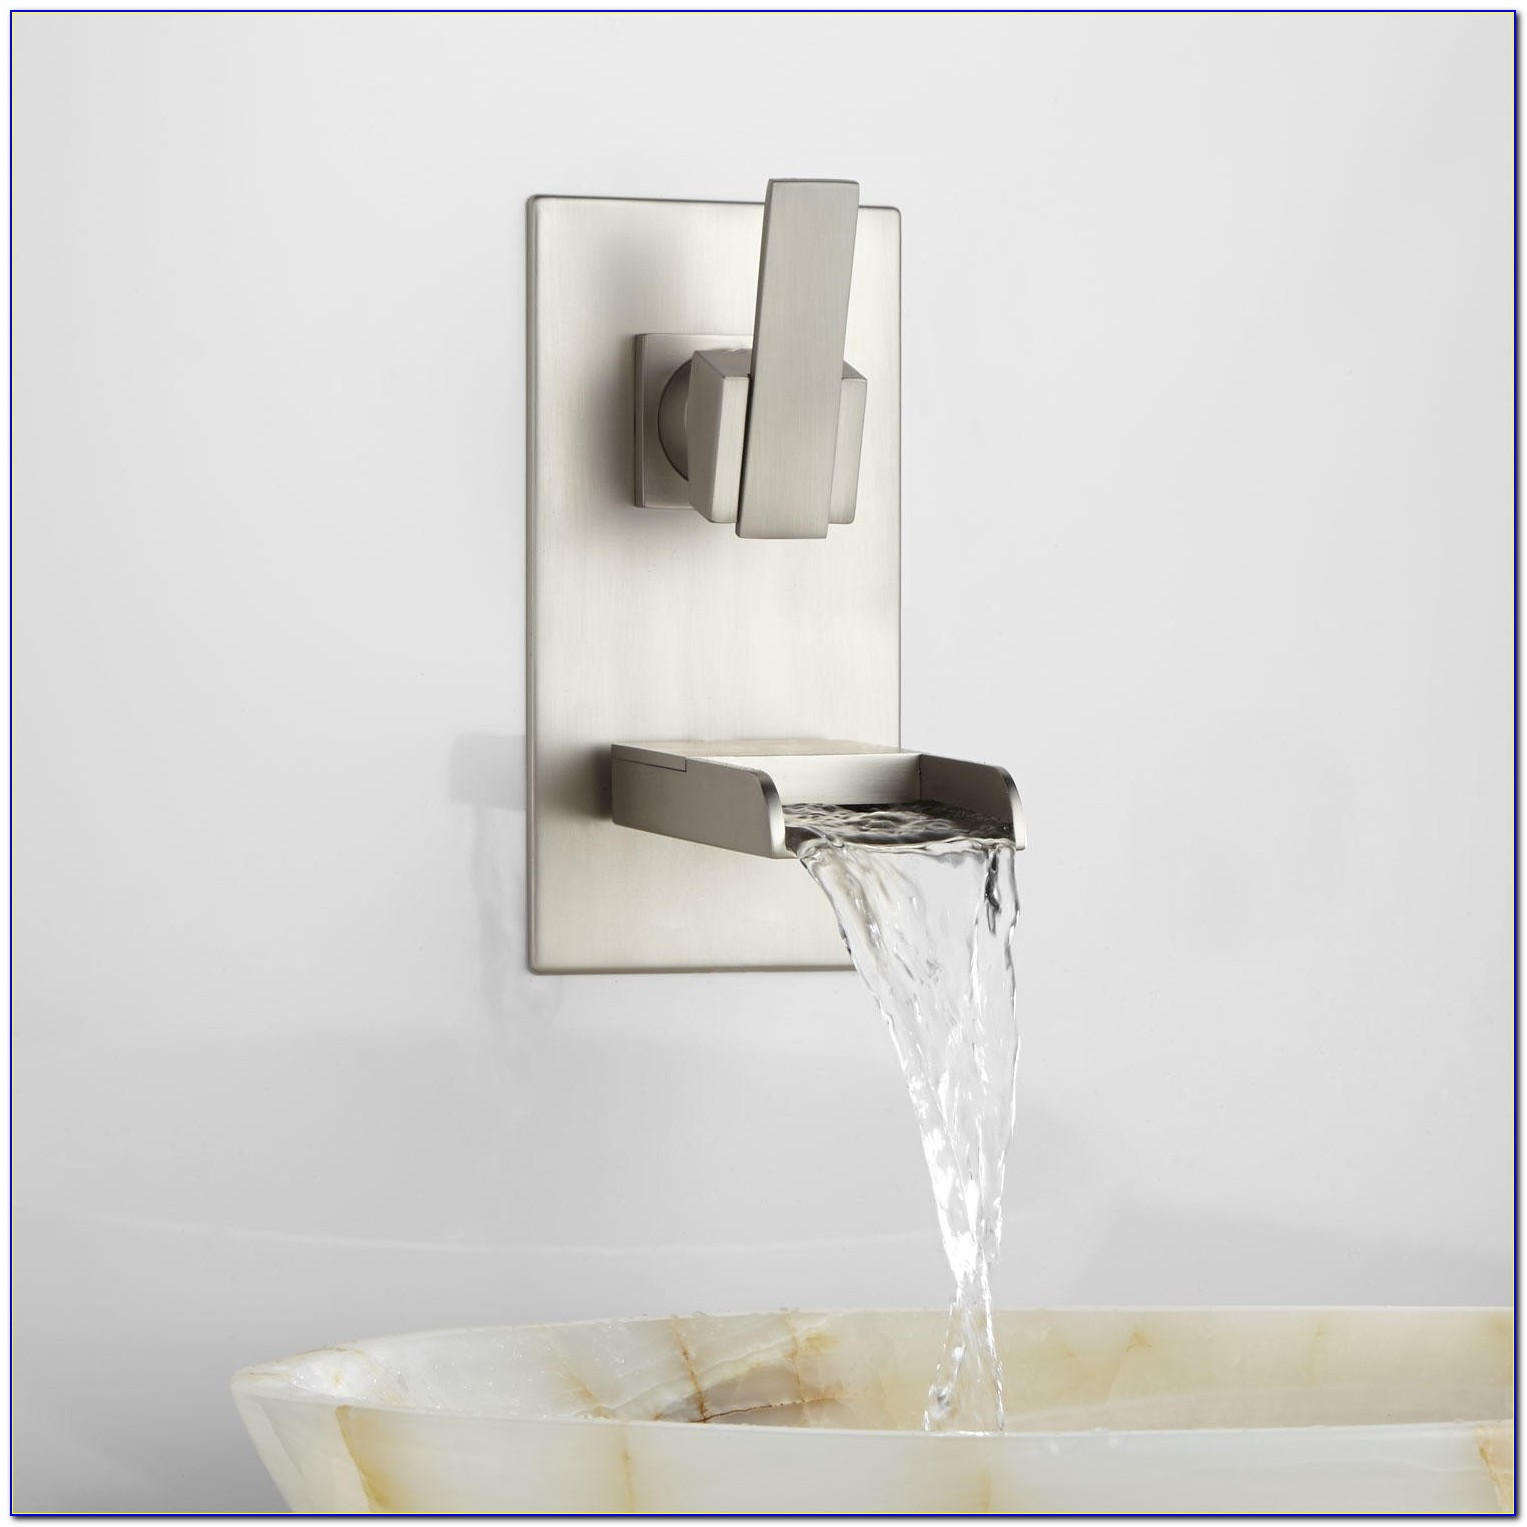 Waterfall Faucet Bathroom Wall Mount